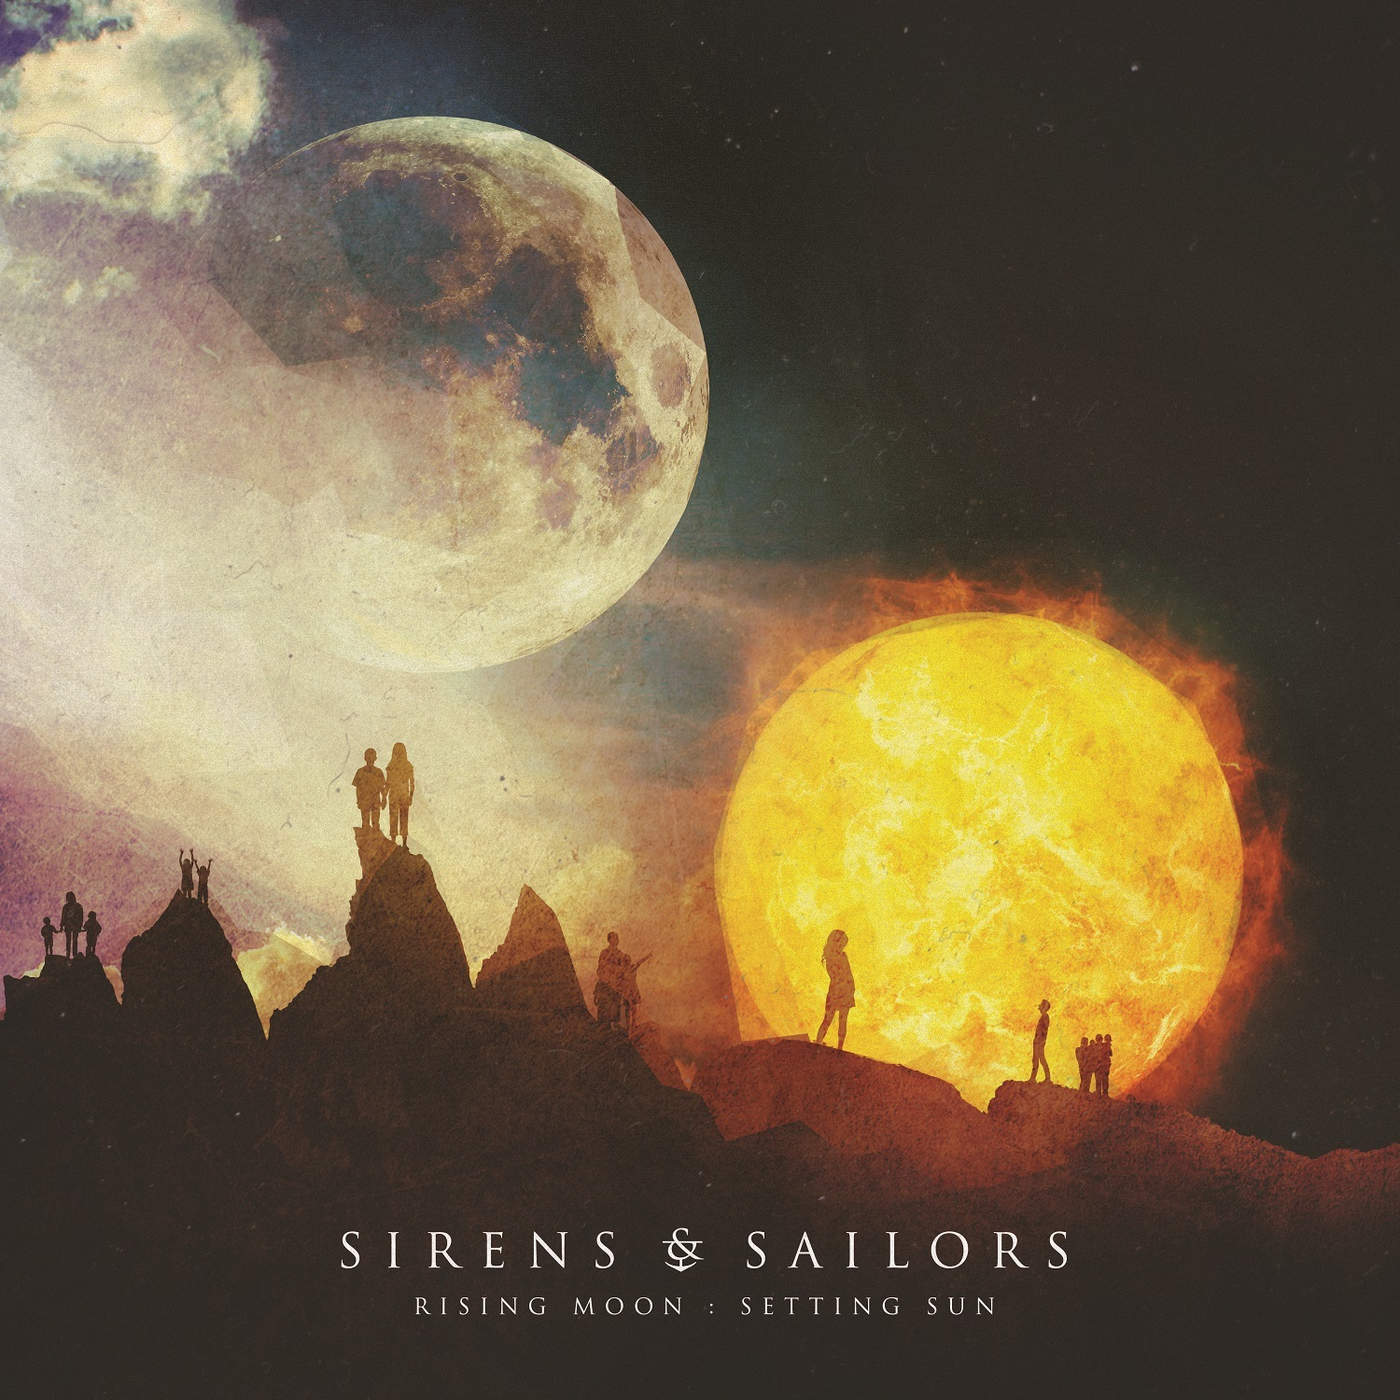 Sirens & Sailors - Rising Moon: Setting Sun (2015)